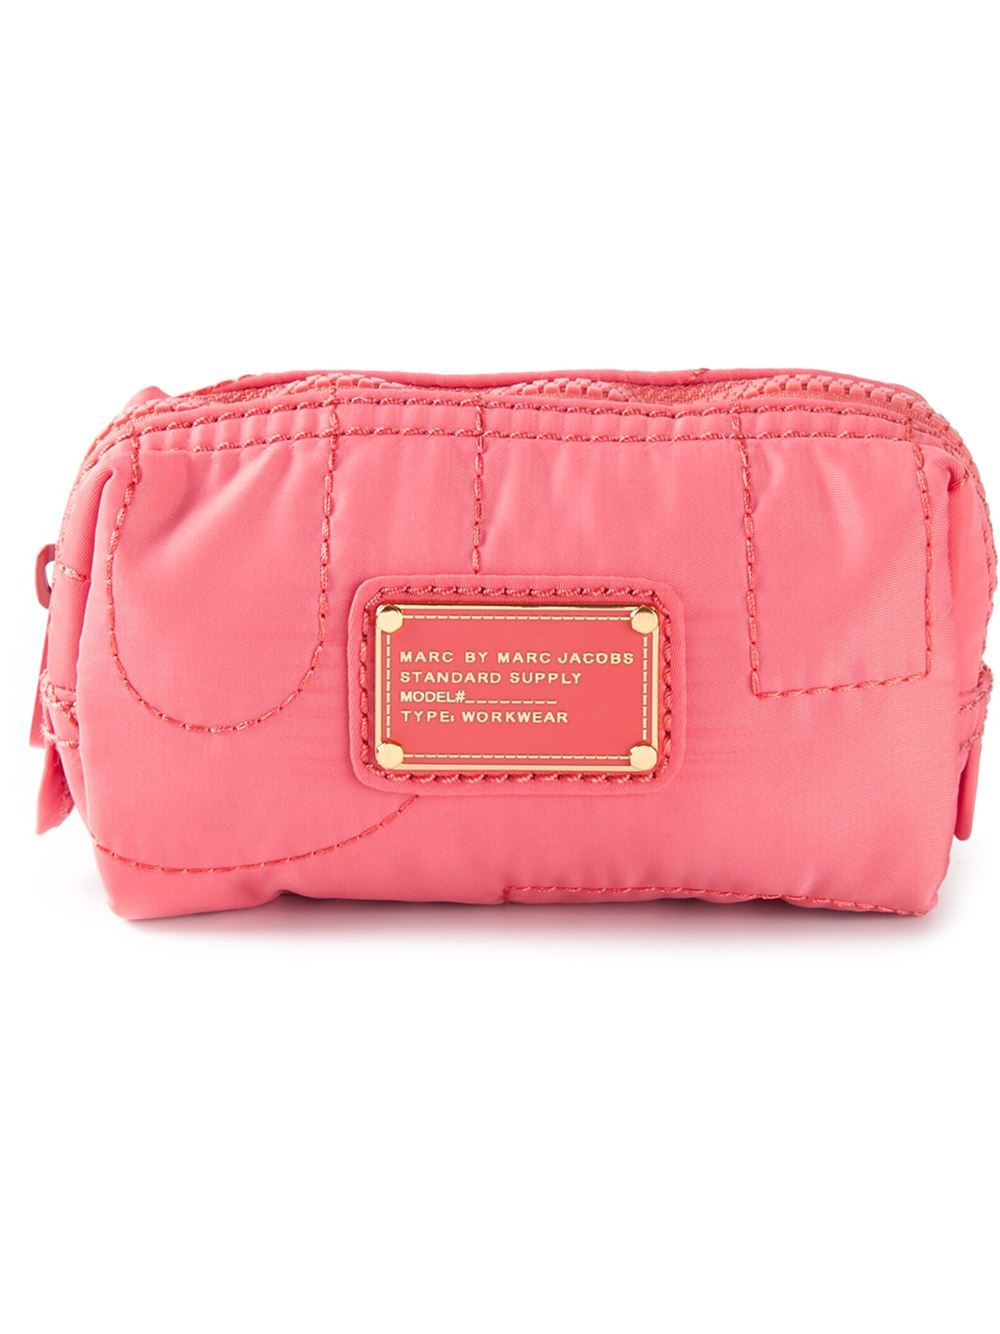 Marc by marc jacobs Quilted Cosmetic Bag in Pink | Lyst : quilted cosmetic bags - Adamdwight.com